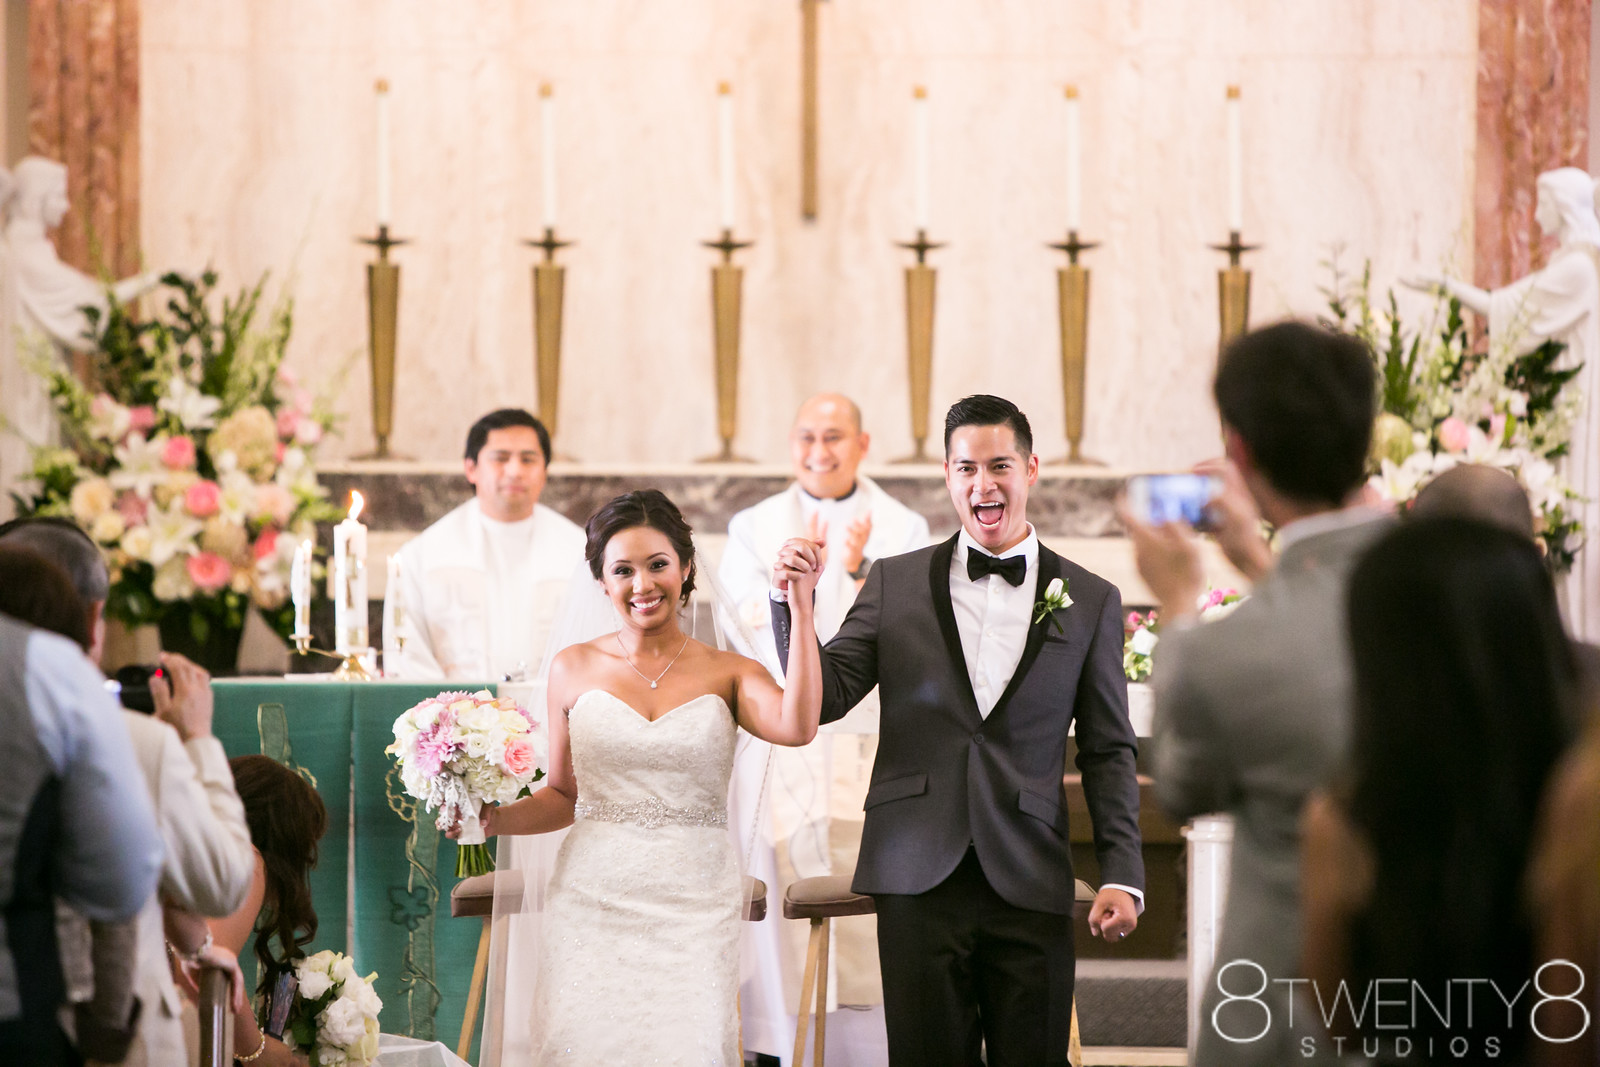 50 top upbeat wedding ceremony recessional songs